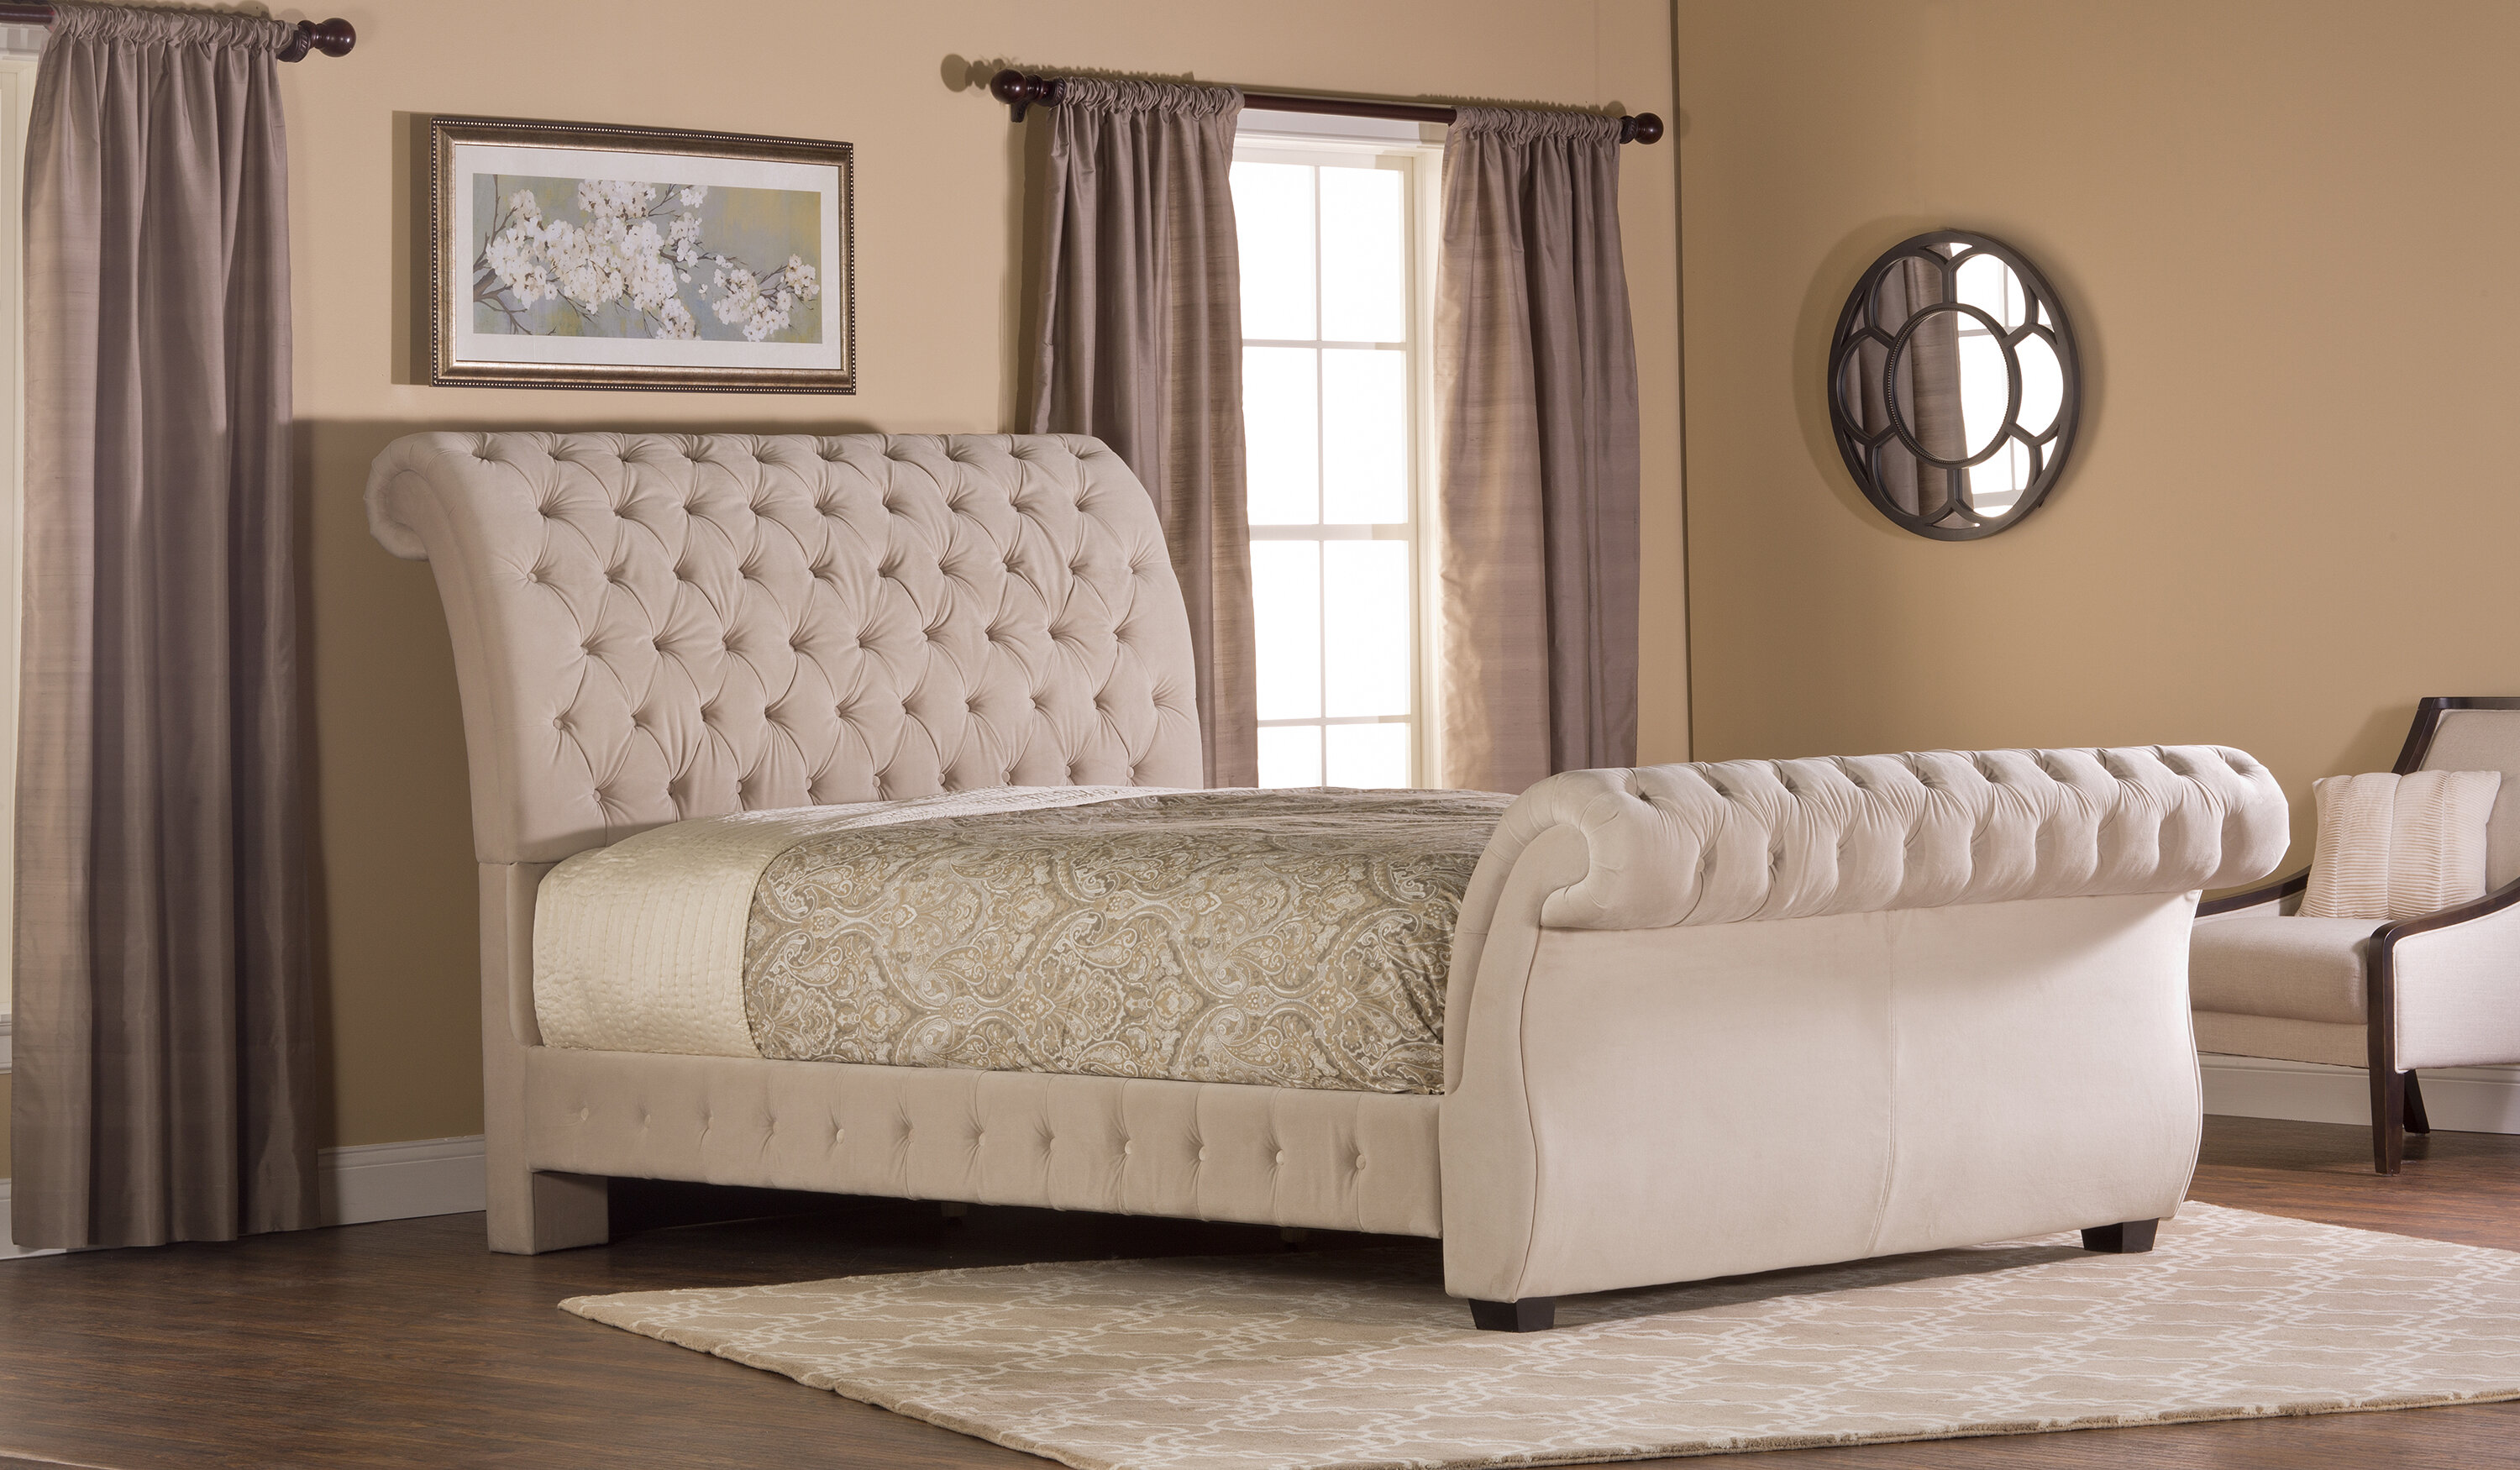 sleigh designs king headboard upholstered build picture sebastian and bed